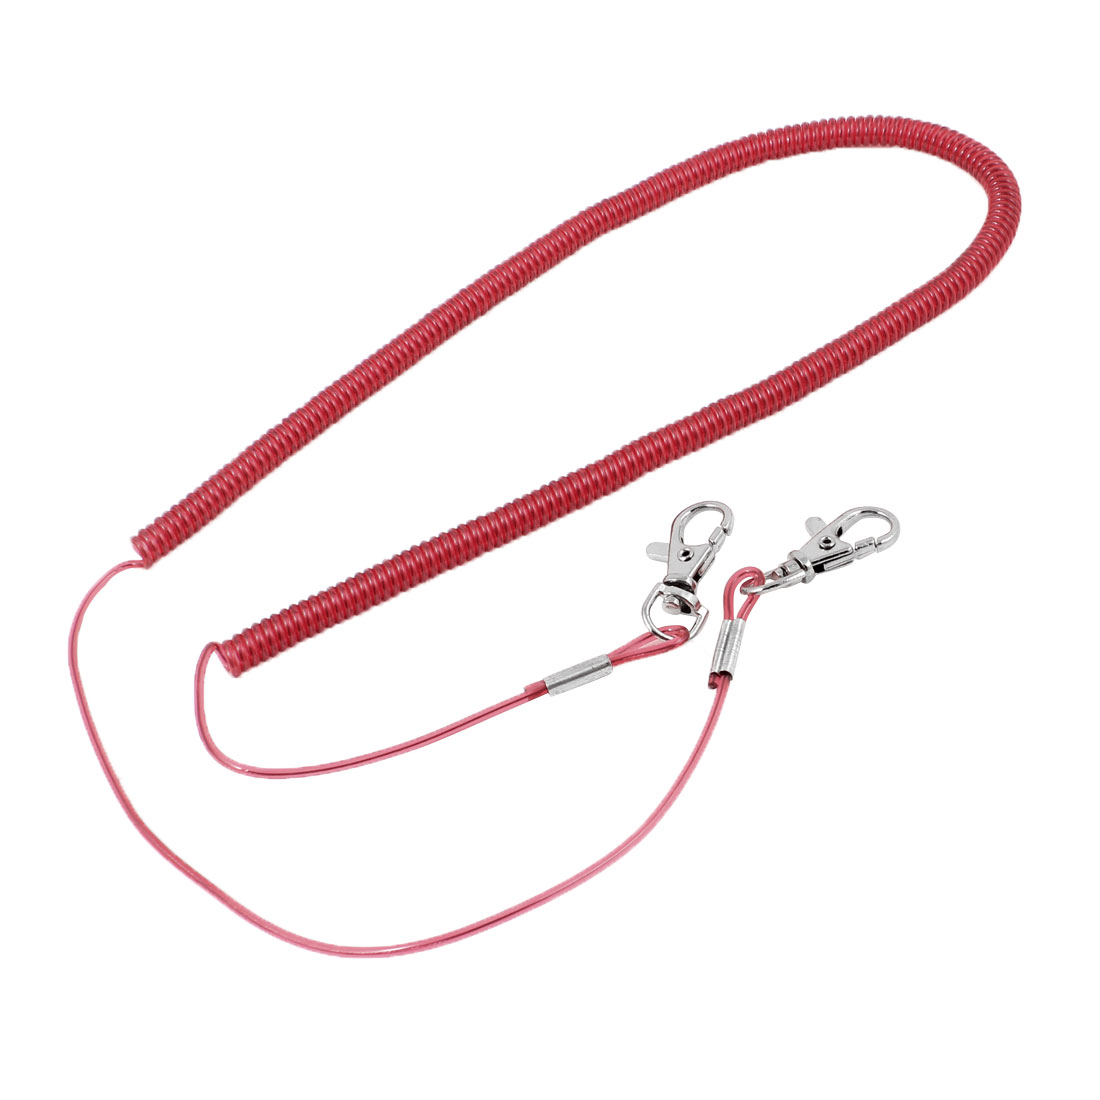 Lobster Clasp Hook Flexible Fishing Safety Line Coiled Lanyard Red 5 Meter